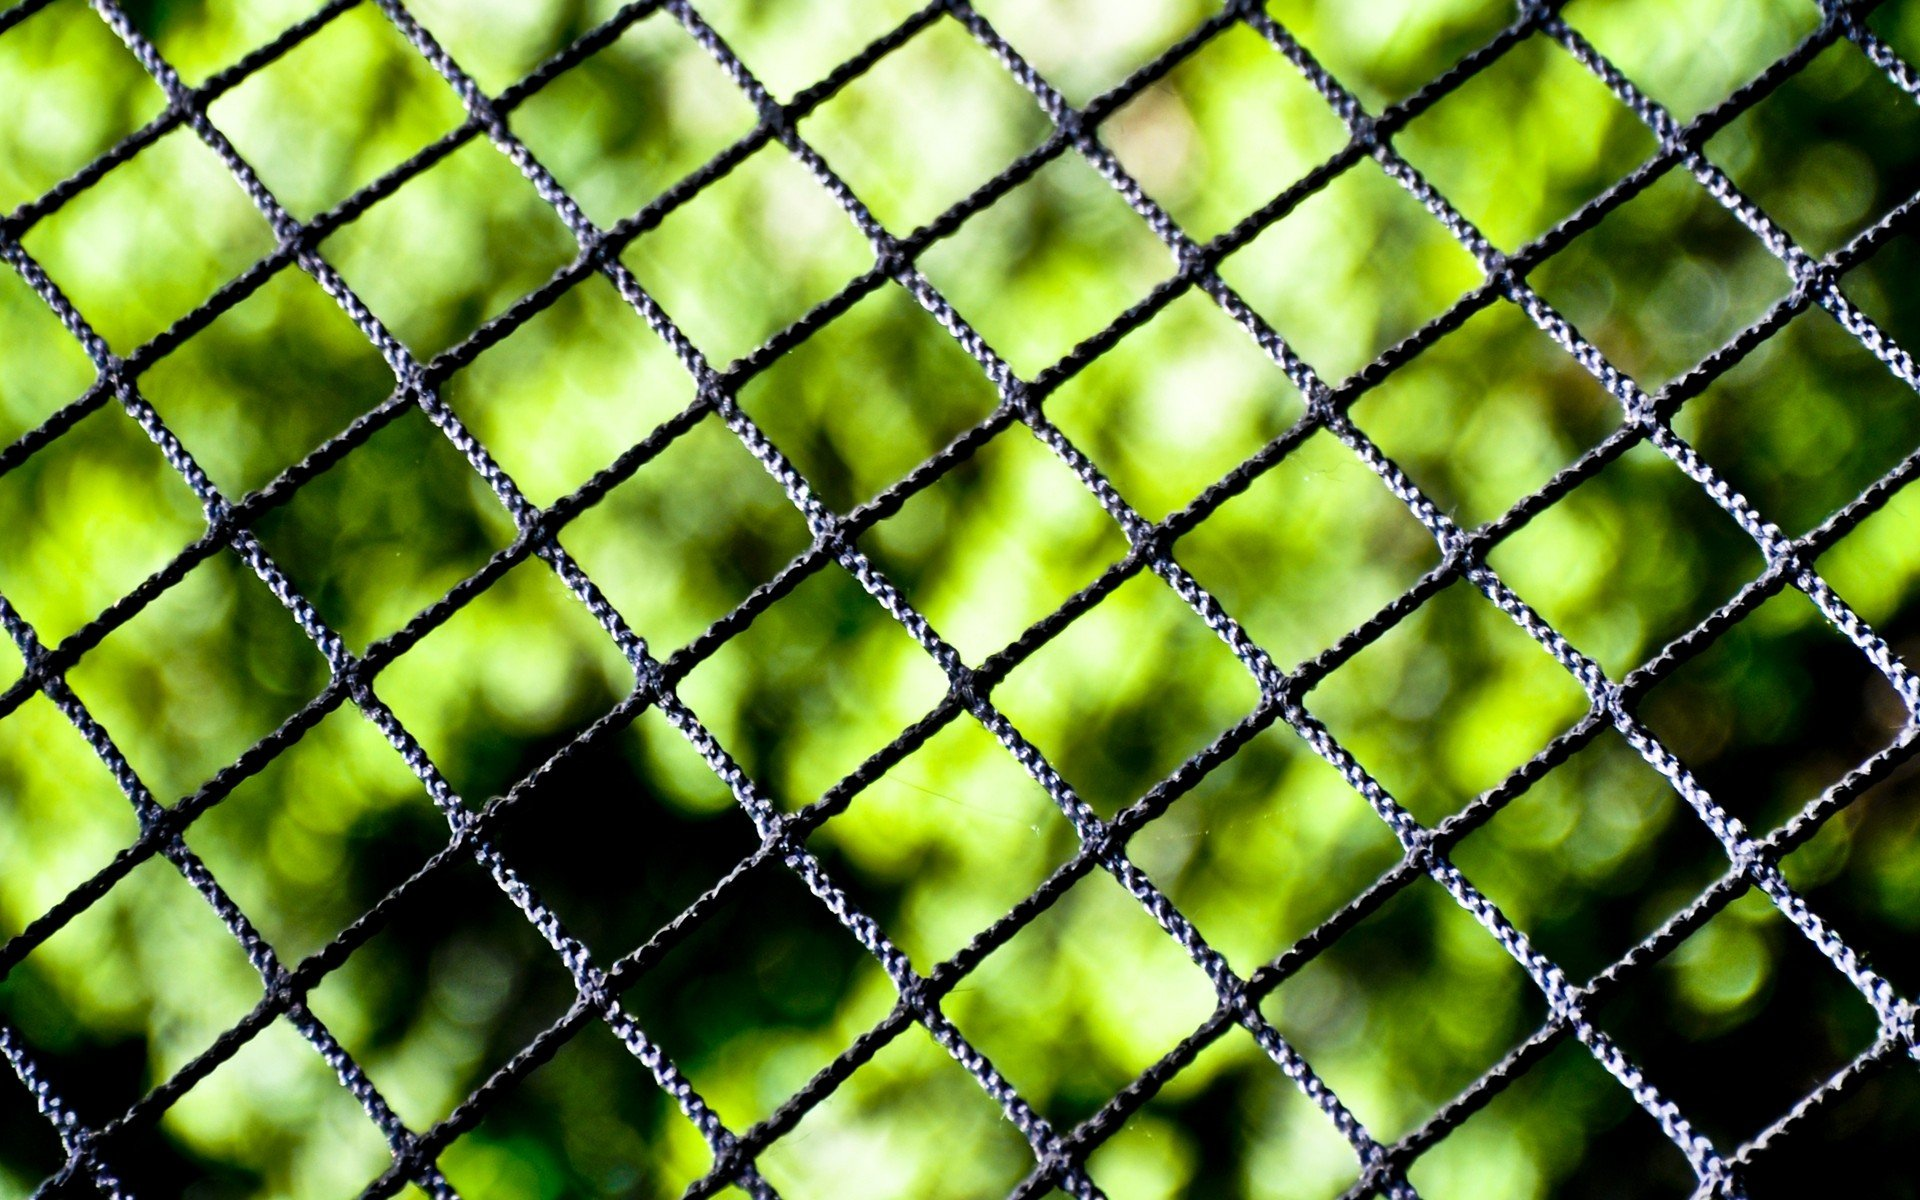 Close Up Nature Fences Chain Link Fence Blurred Background Wallpaper